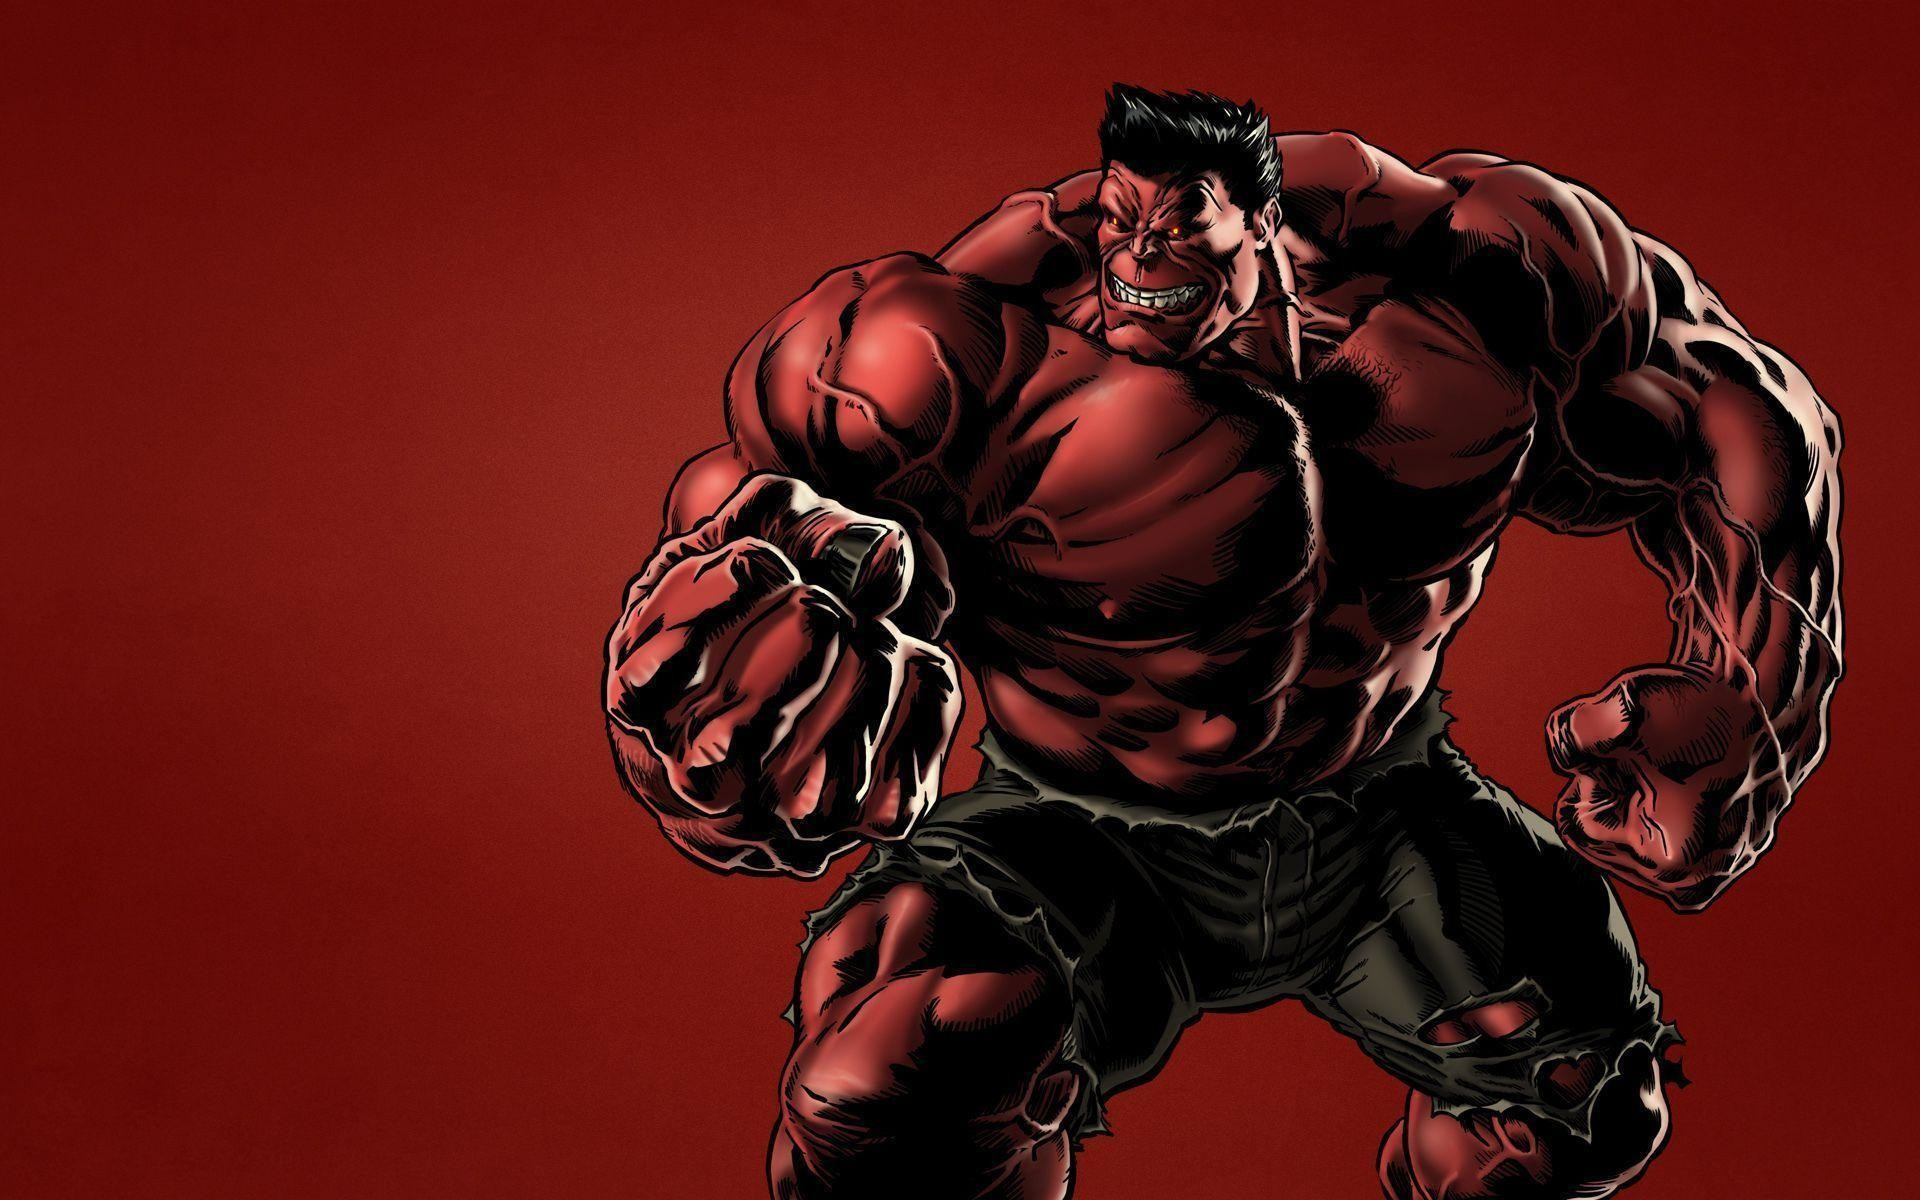 1920x1200 Wallpapers For > Red Hulk Hd Wallpapers 1080p